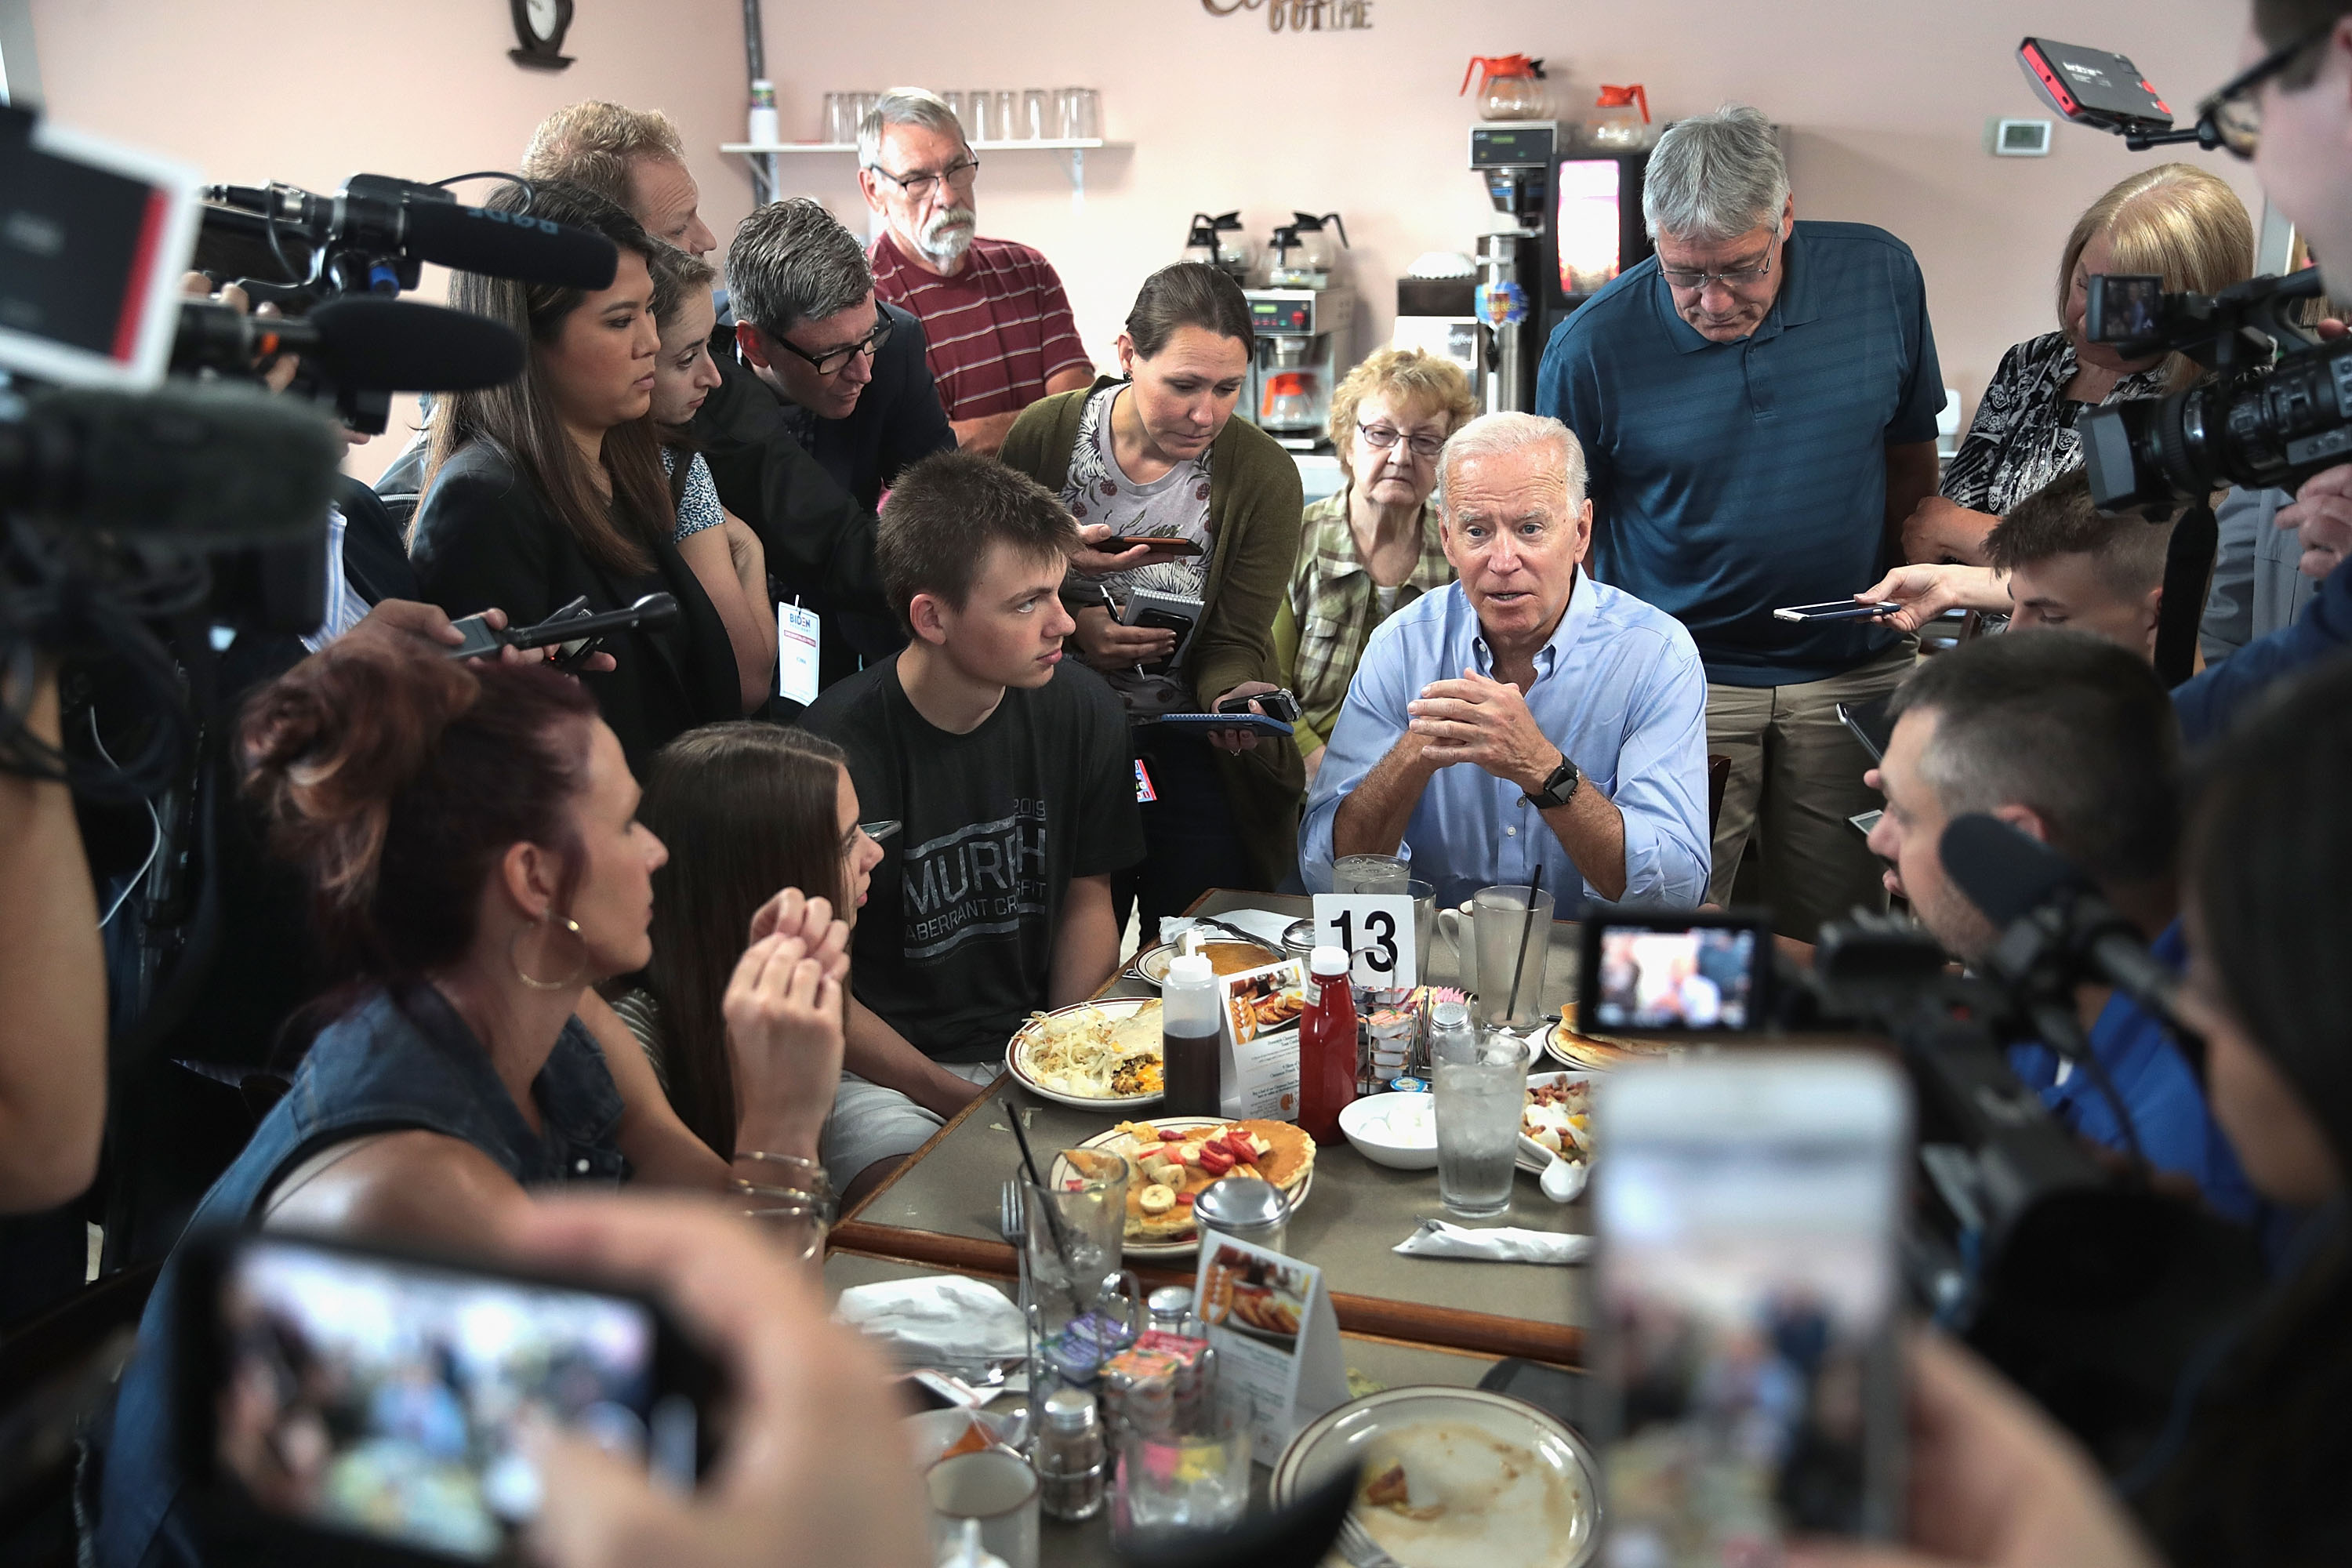 Democratic presidential candidate and former U.S. vice president Joe Biden speaks to diners at the Tasty Cafe during a quick campaign stop on June 12, 2019 in Eldridge, Iowa. (Photo by Scott Olson/Getty Images)